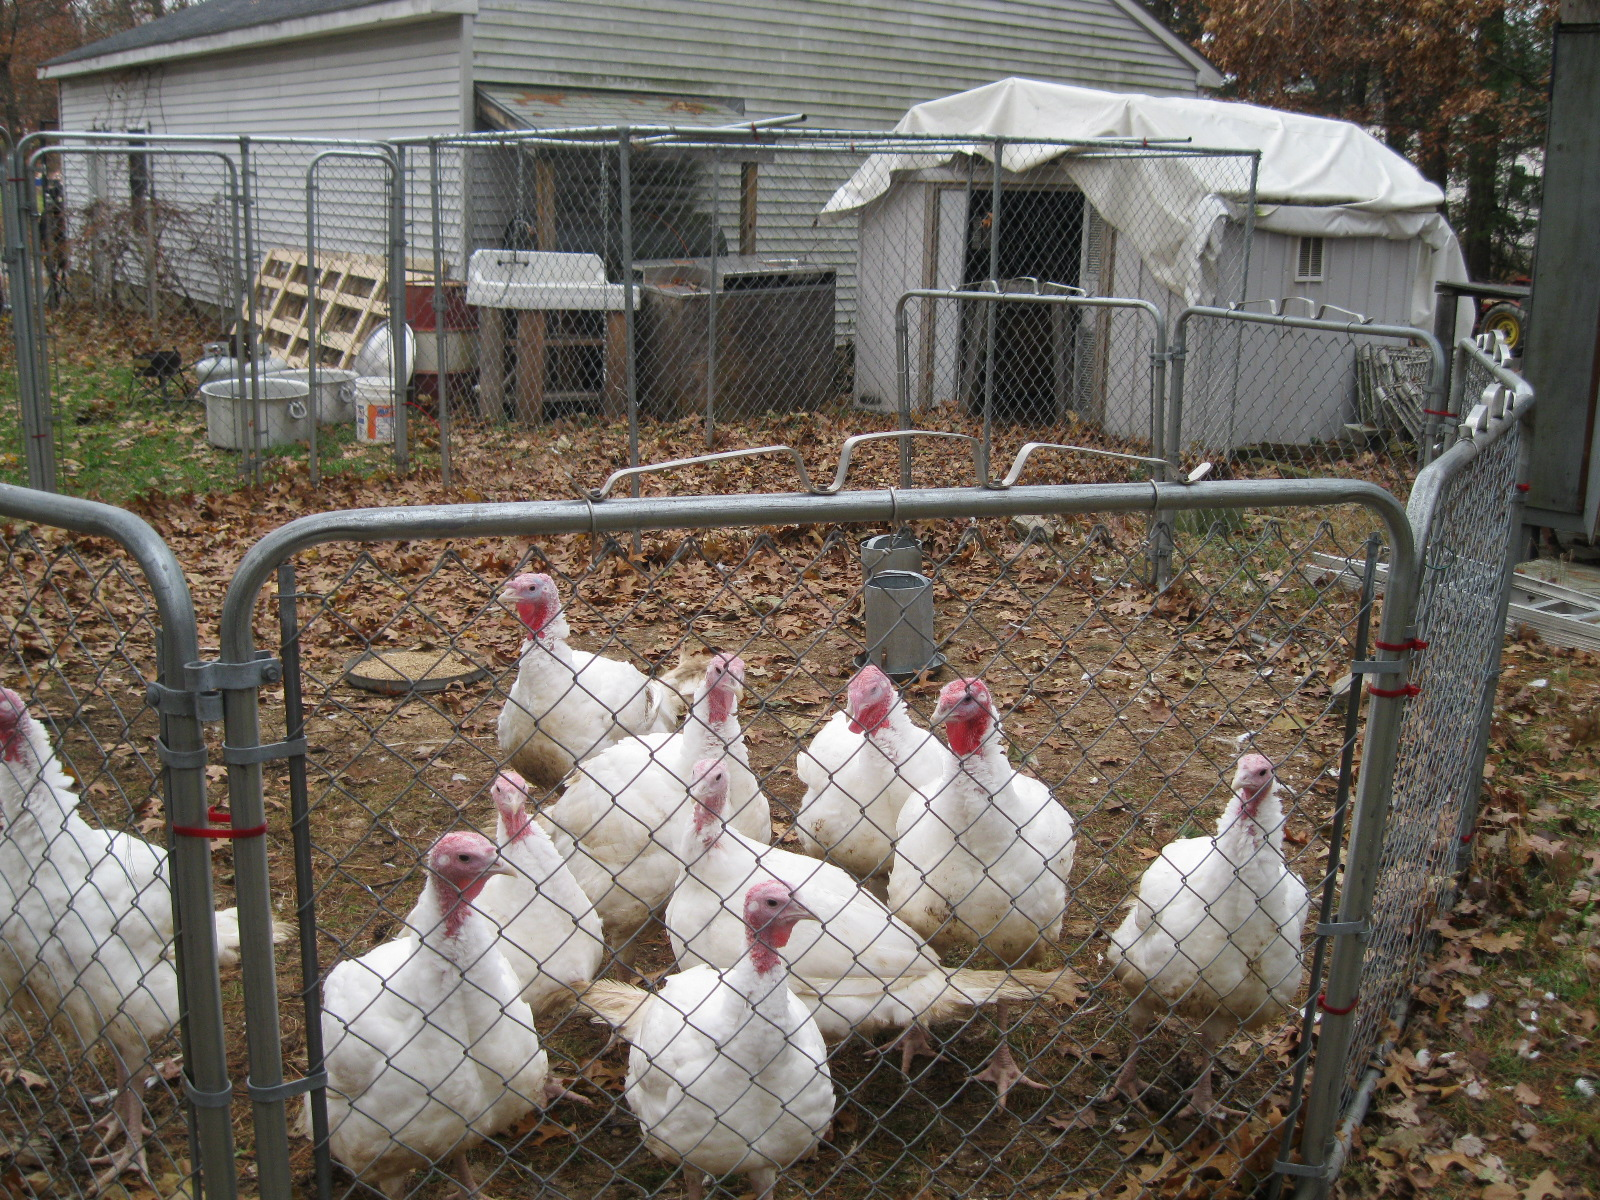 Community Chickens